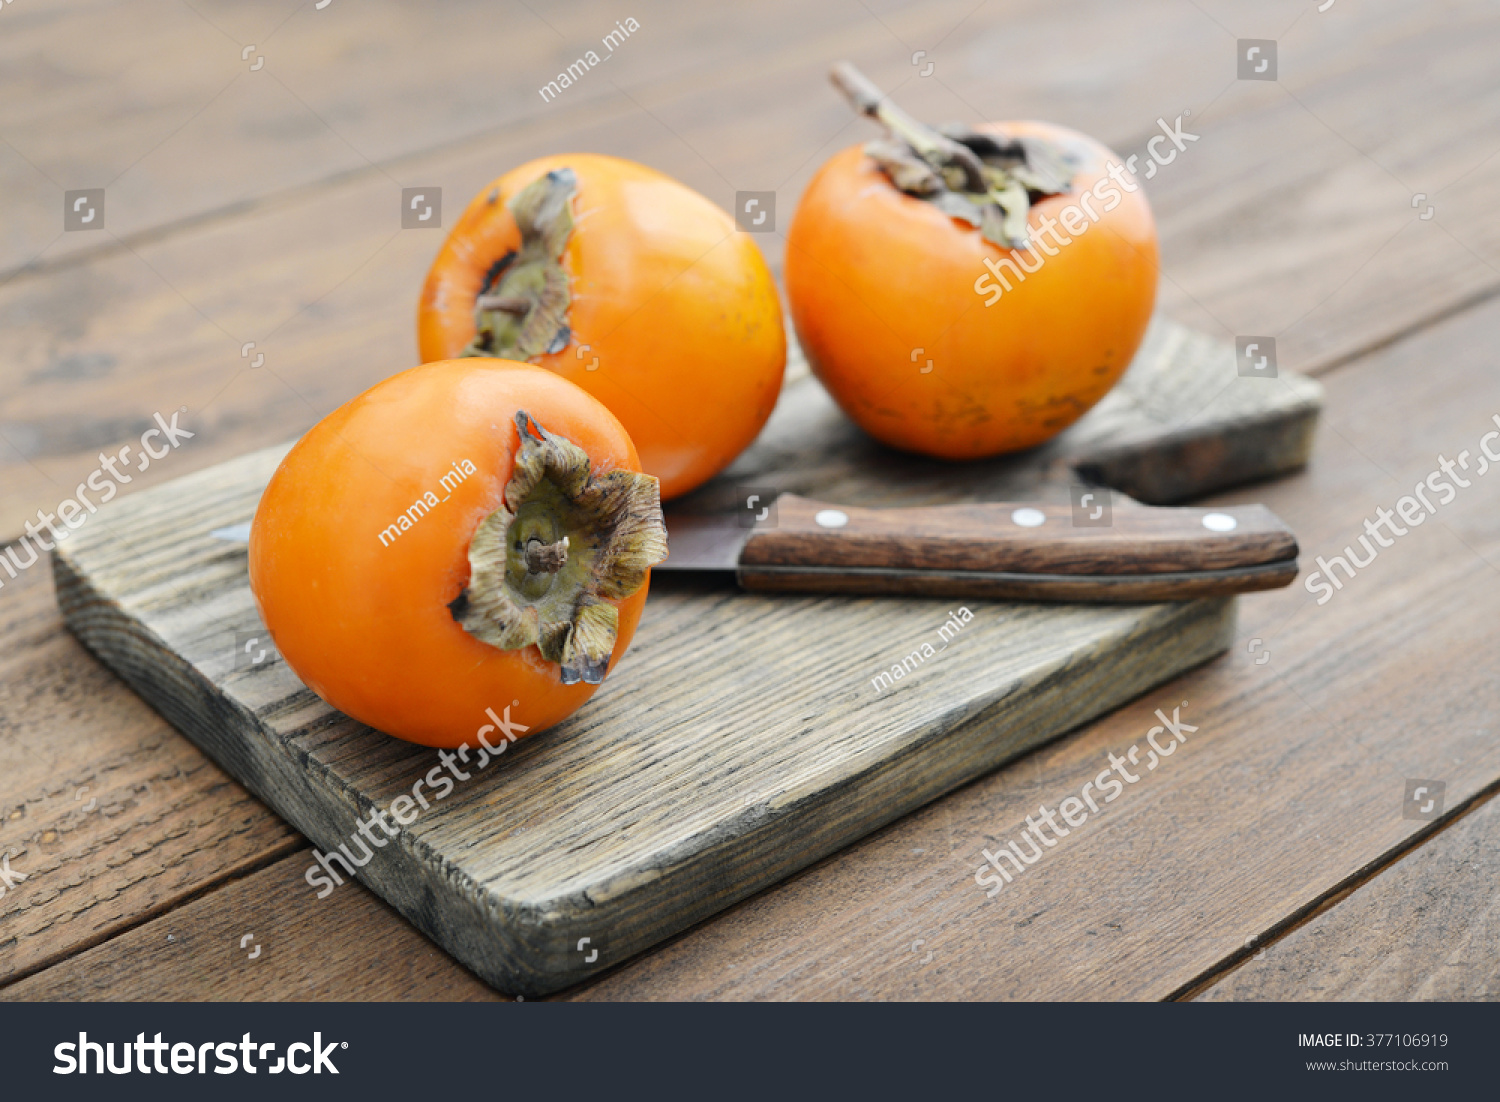 how to tell when a persimmon is ripe